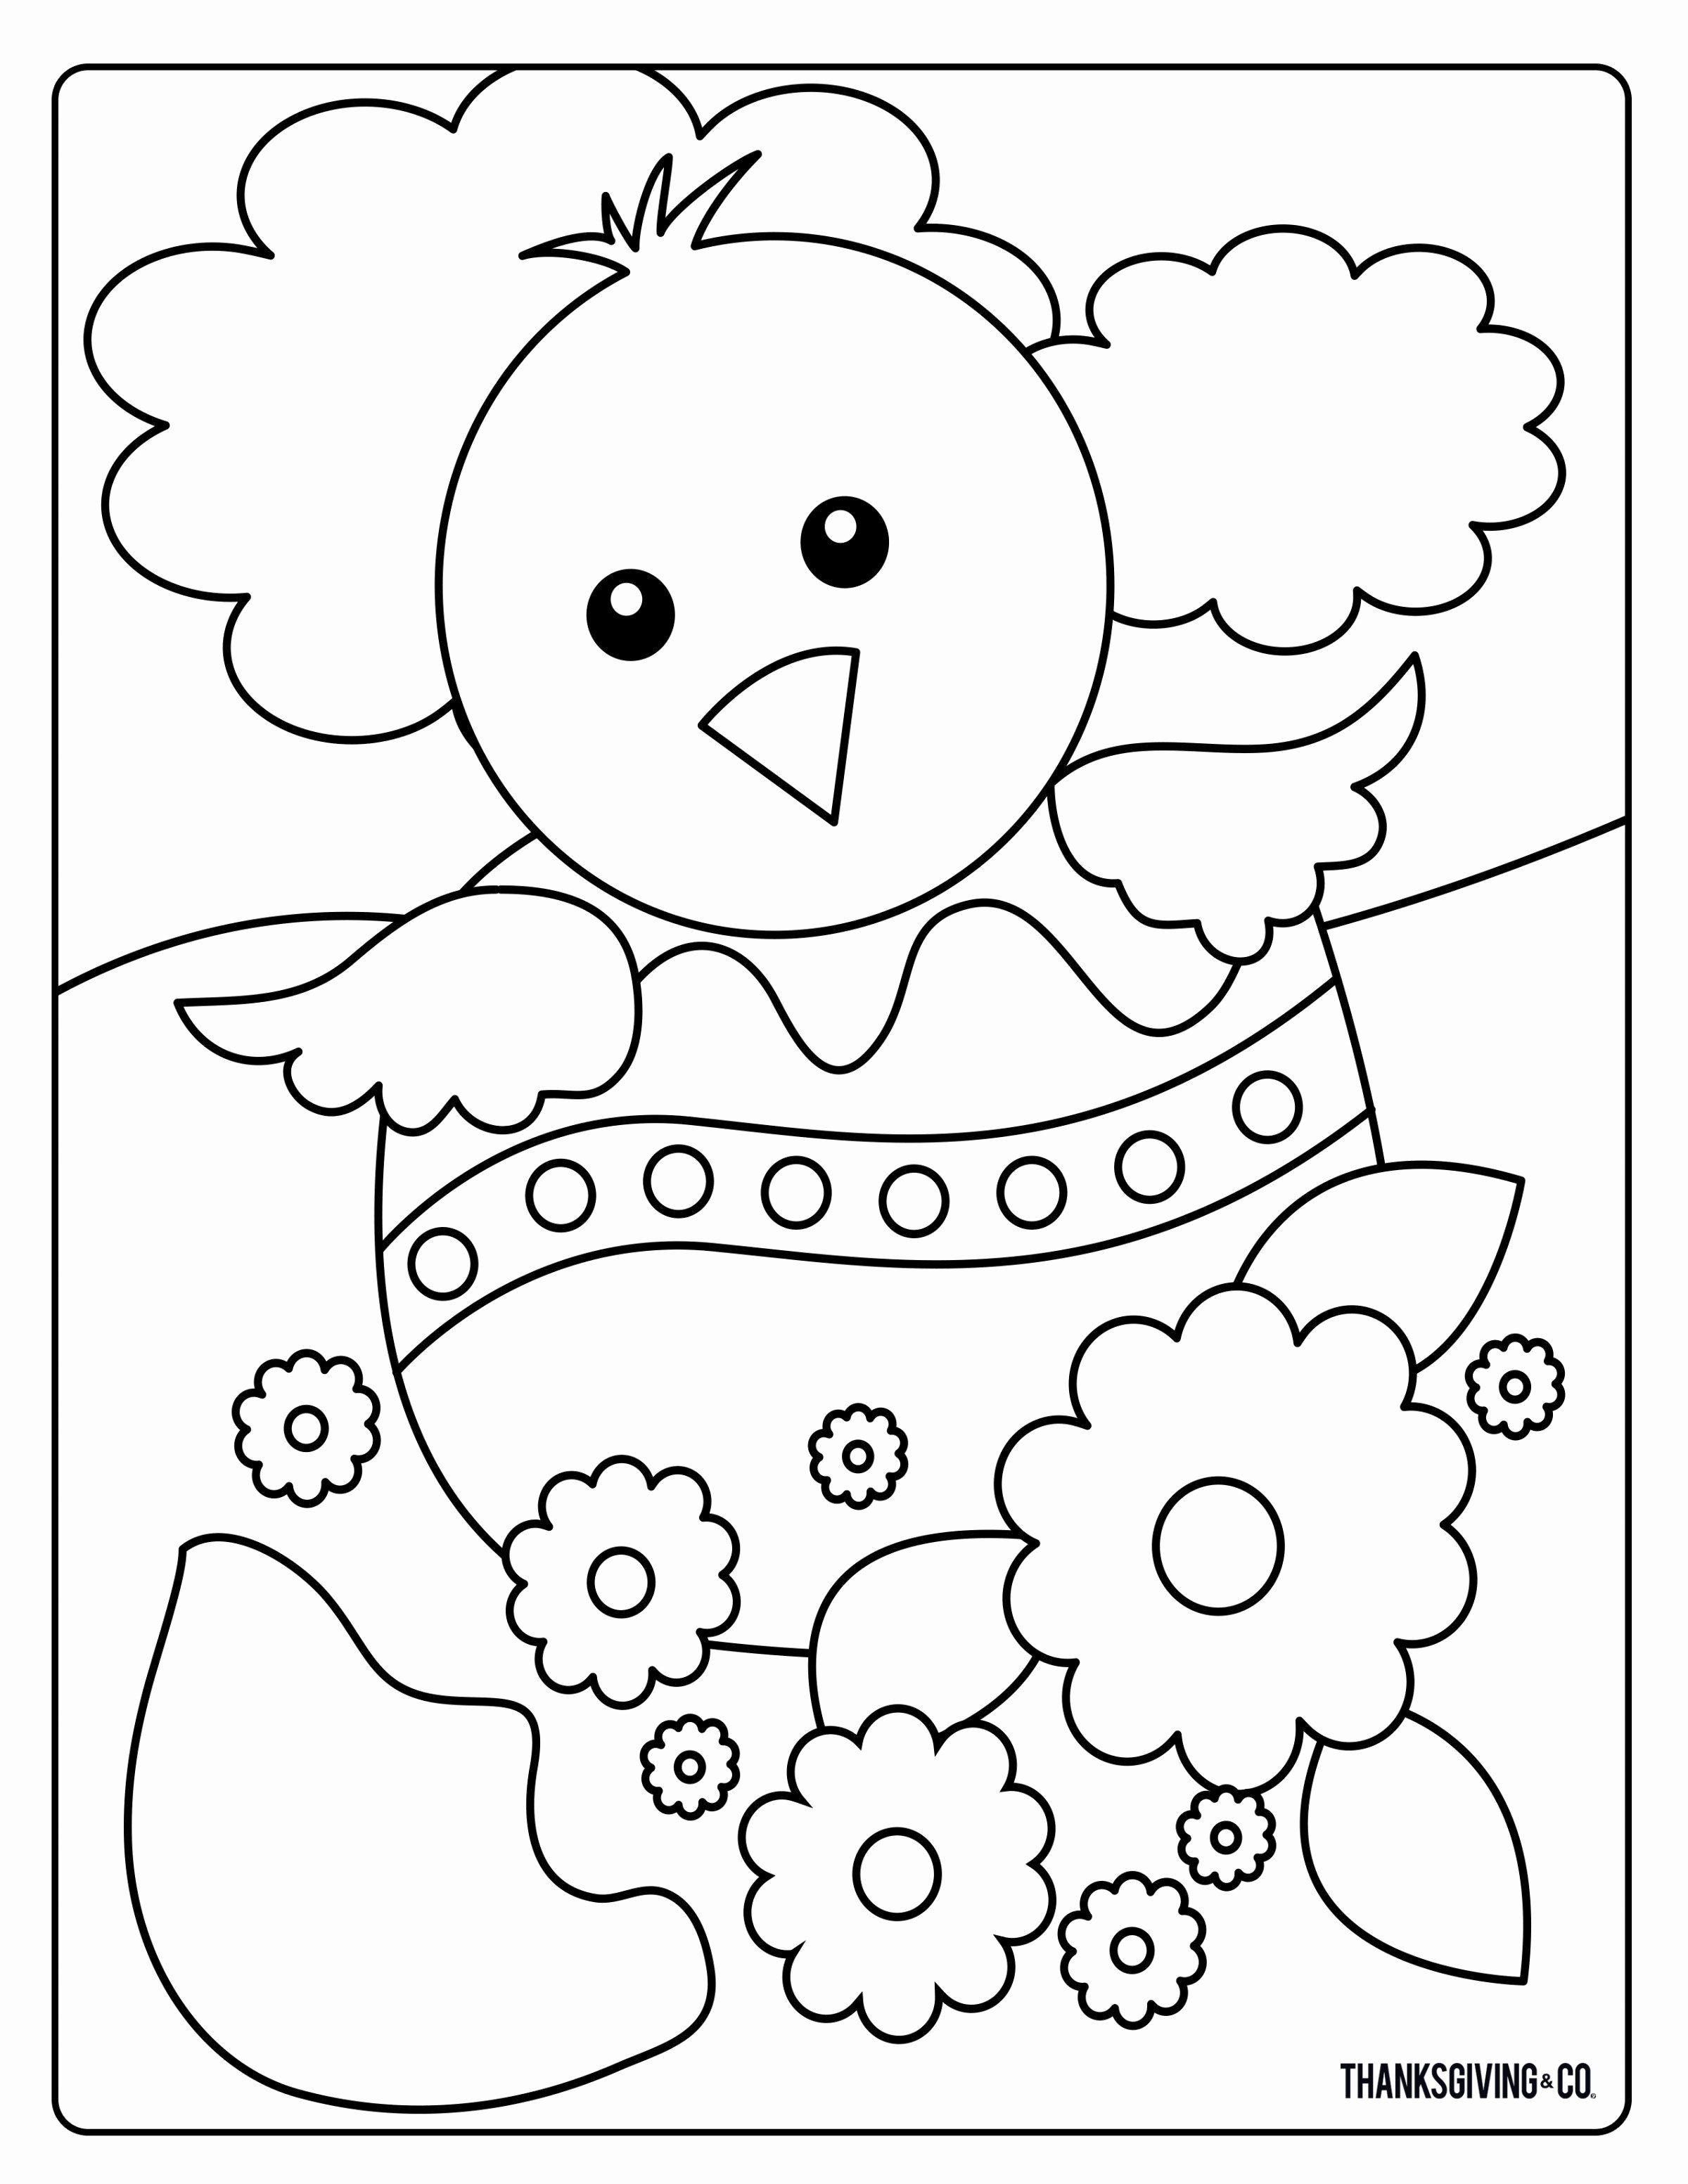 Easter Coloring Cards Printable Best Of Coloring Pages Easter Coloring Pages To Print Numb Easter Coloring Book Unicorn Coloring Pages Easter Coloring Pictures